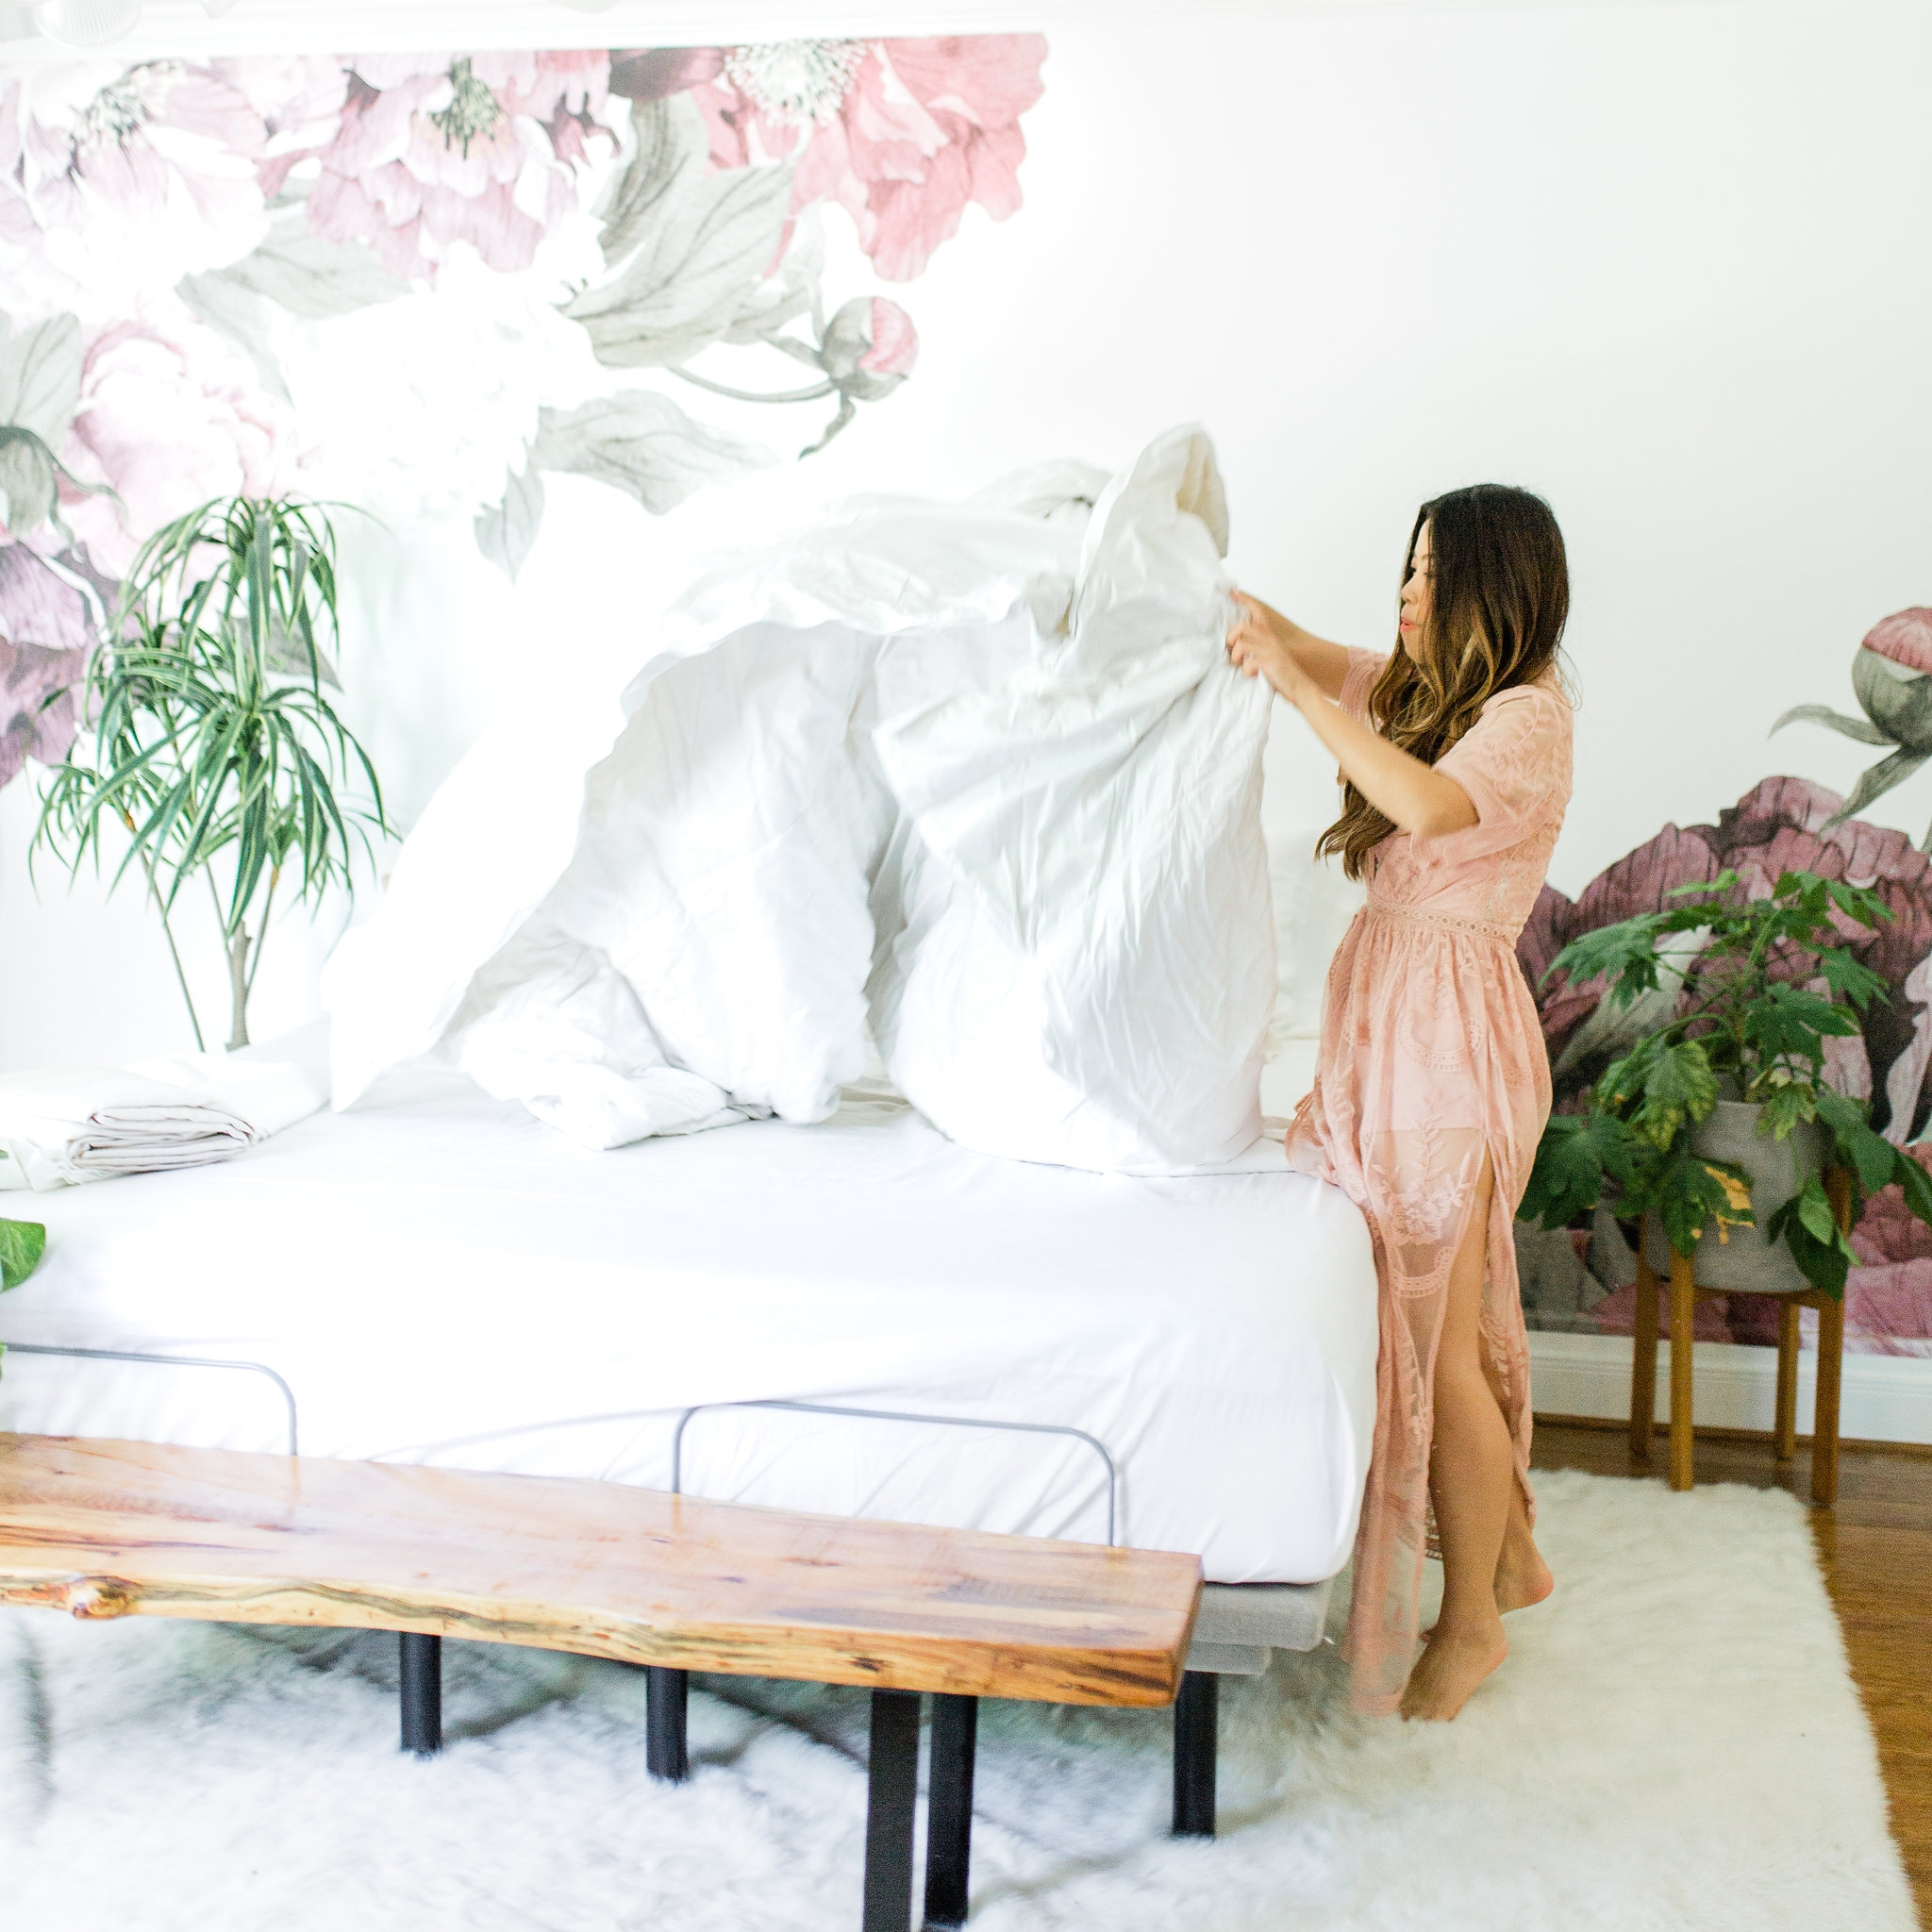 How to Get Better Sleep 3 Quality Bedding Basics To Build your Sanctuary The Company Store Review Joyfullygreen 2 Down Comforter Super Light.jpg